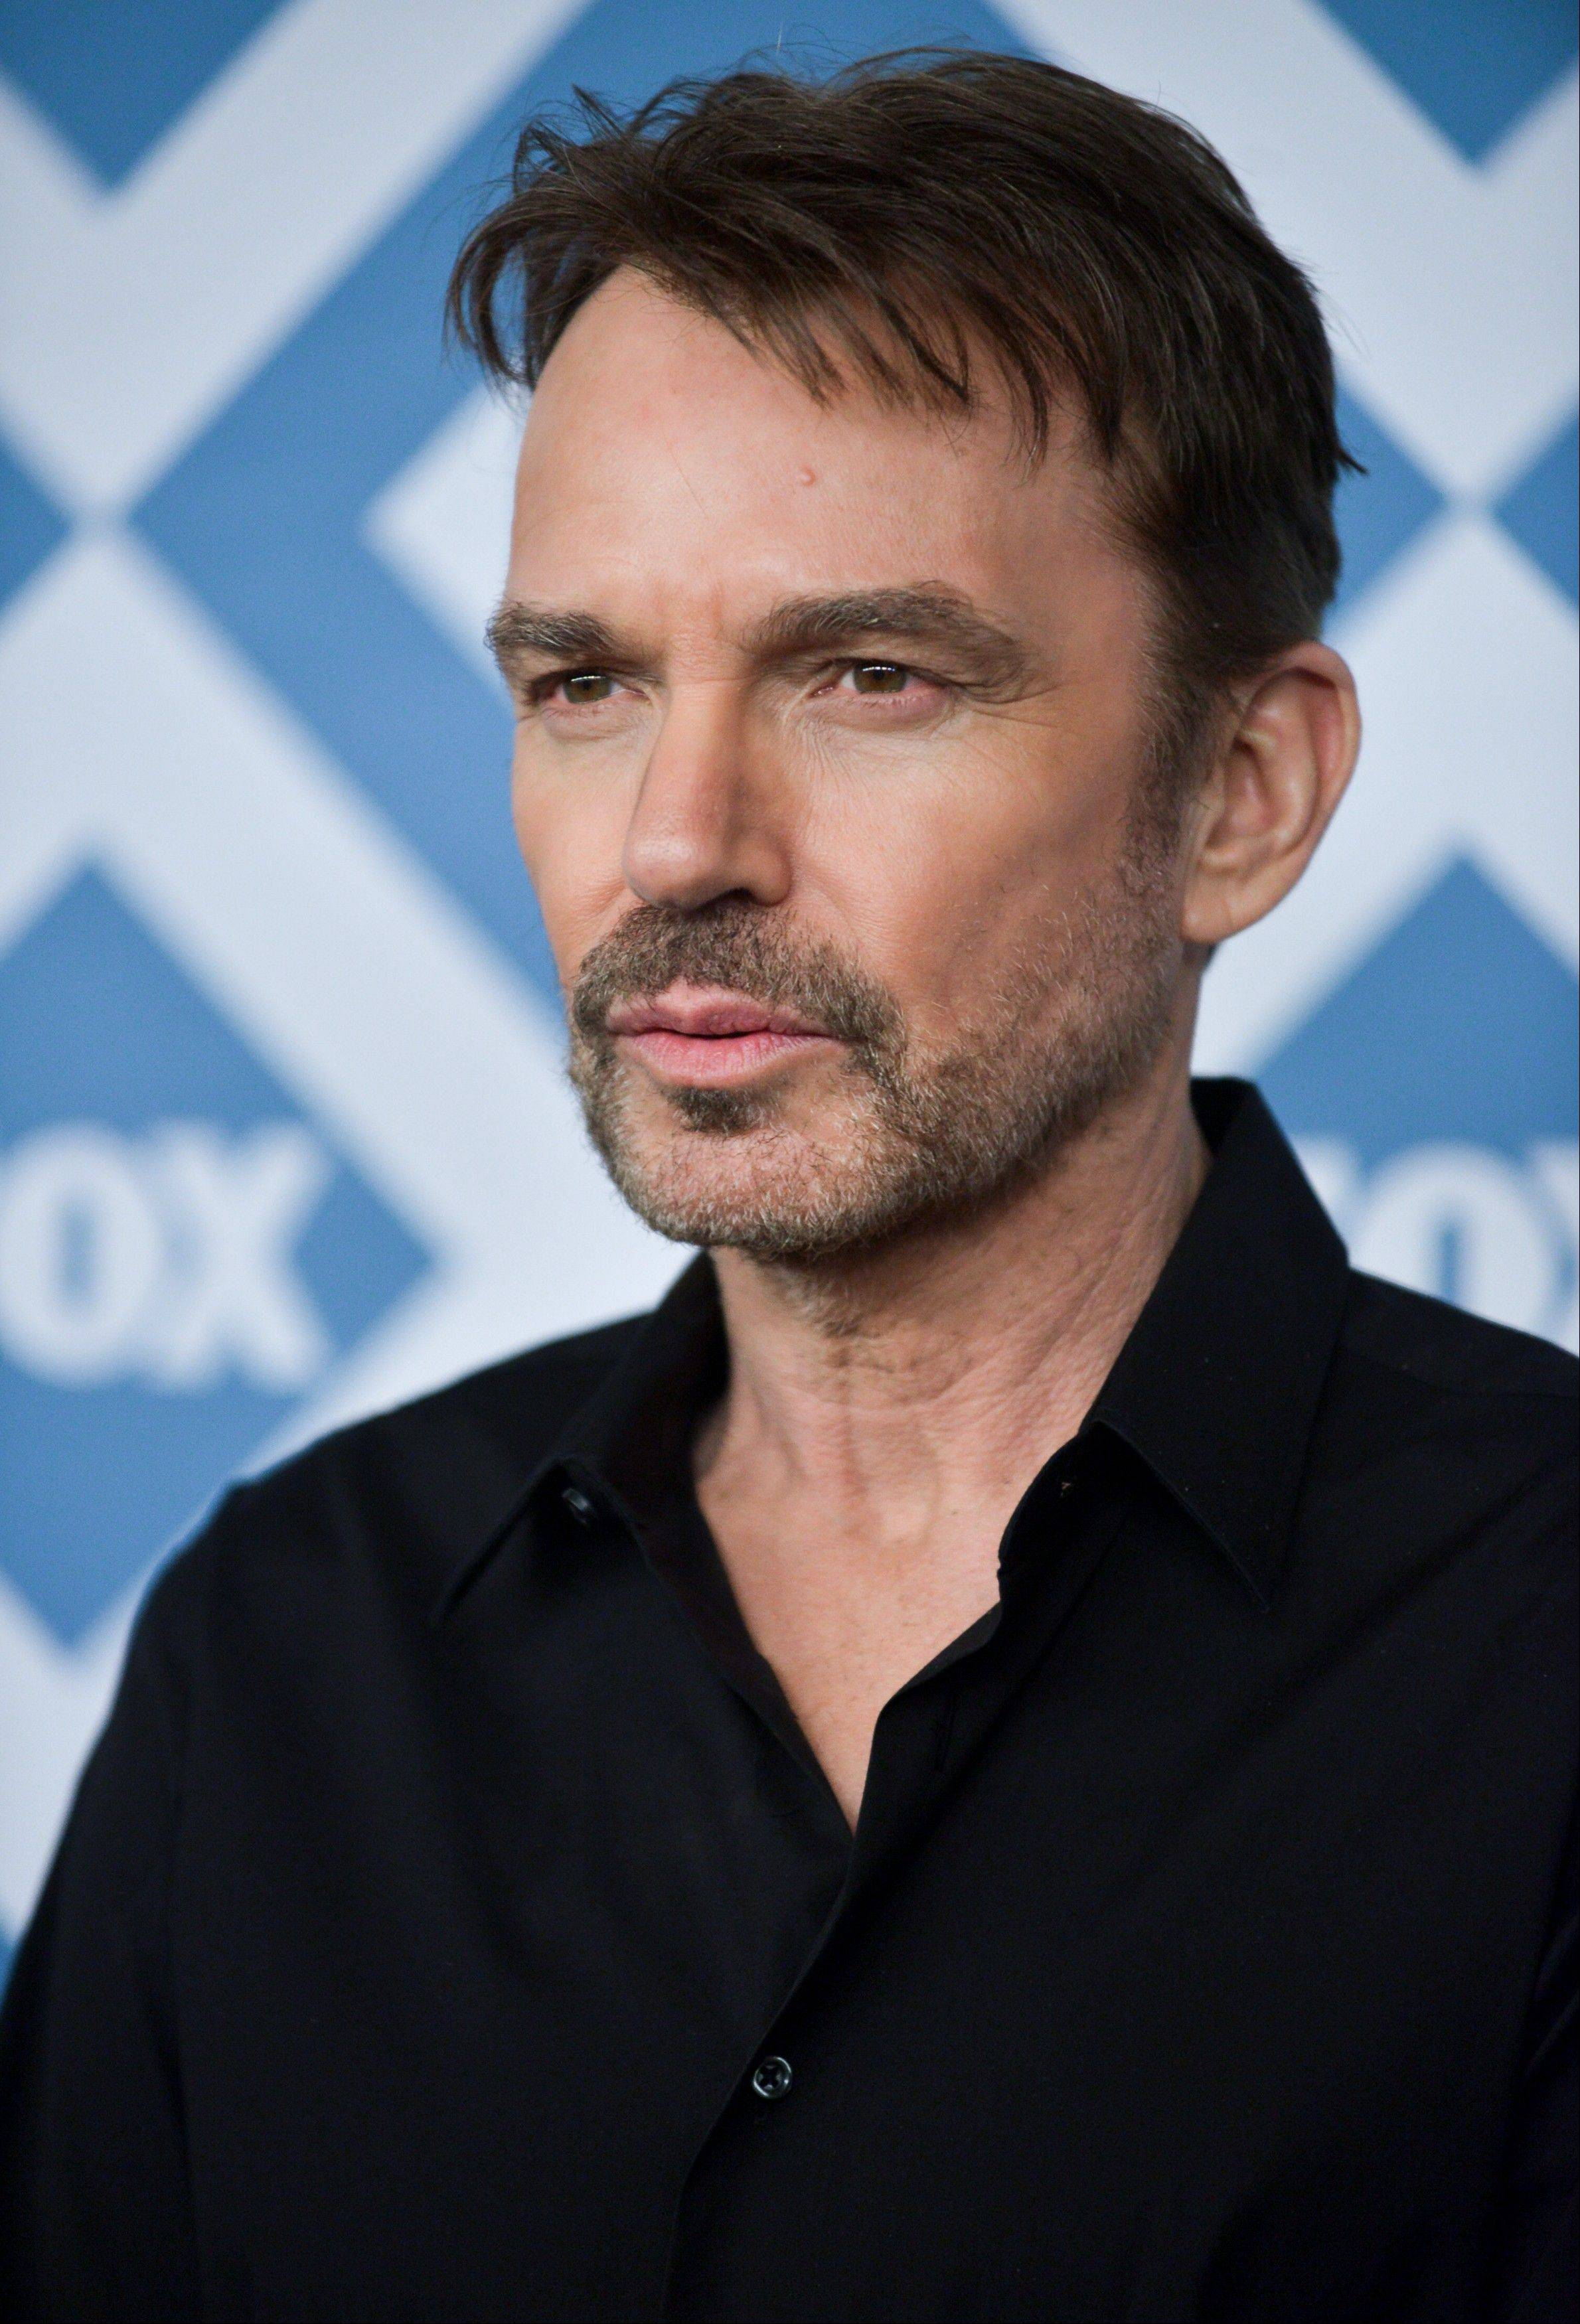 Billy Bob Thornton arrives at the Fox All-Star Party on Monday at the Langham Hotel in Pasadena, Calif.